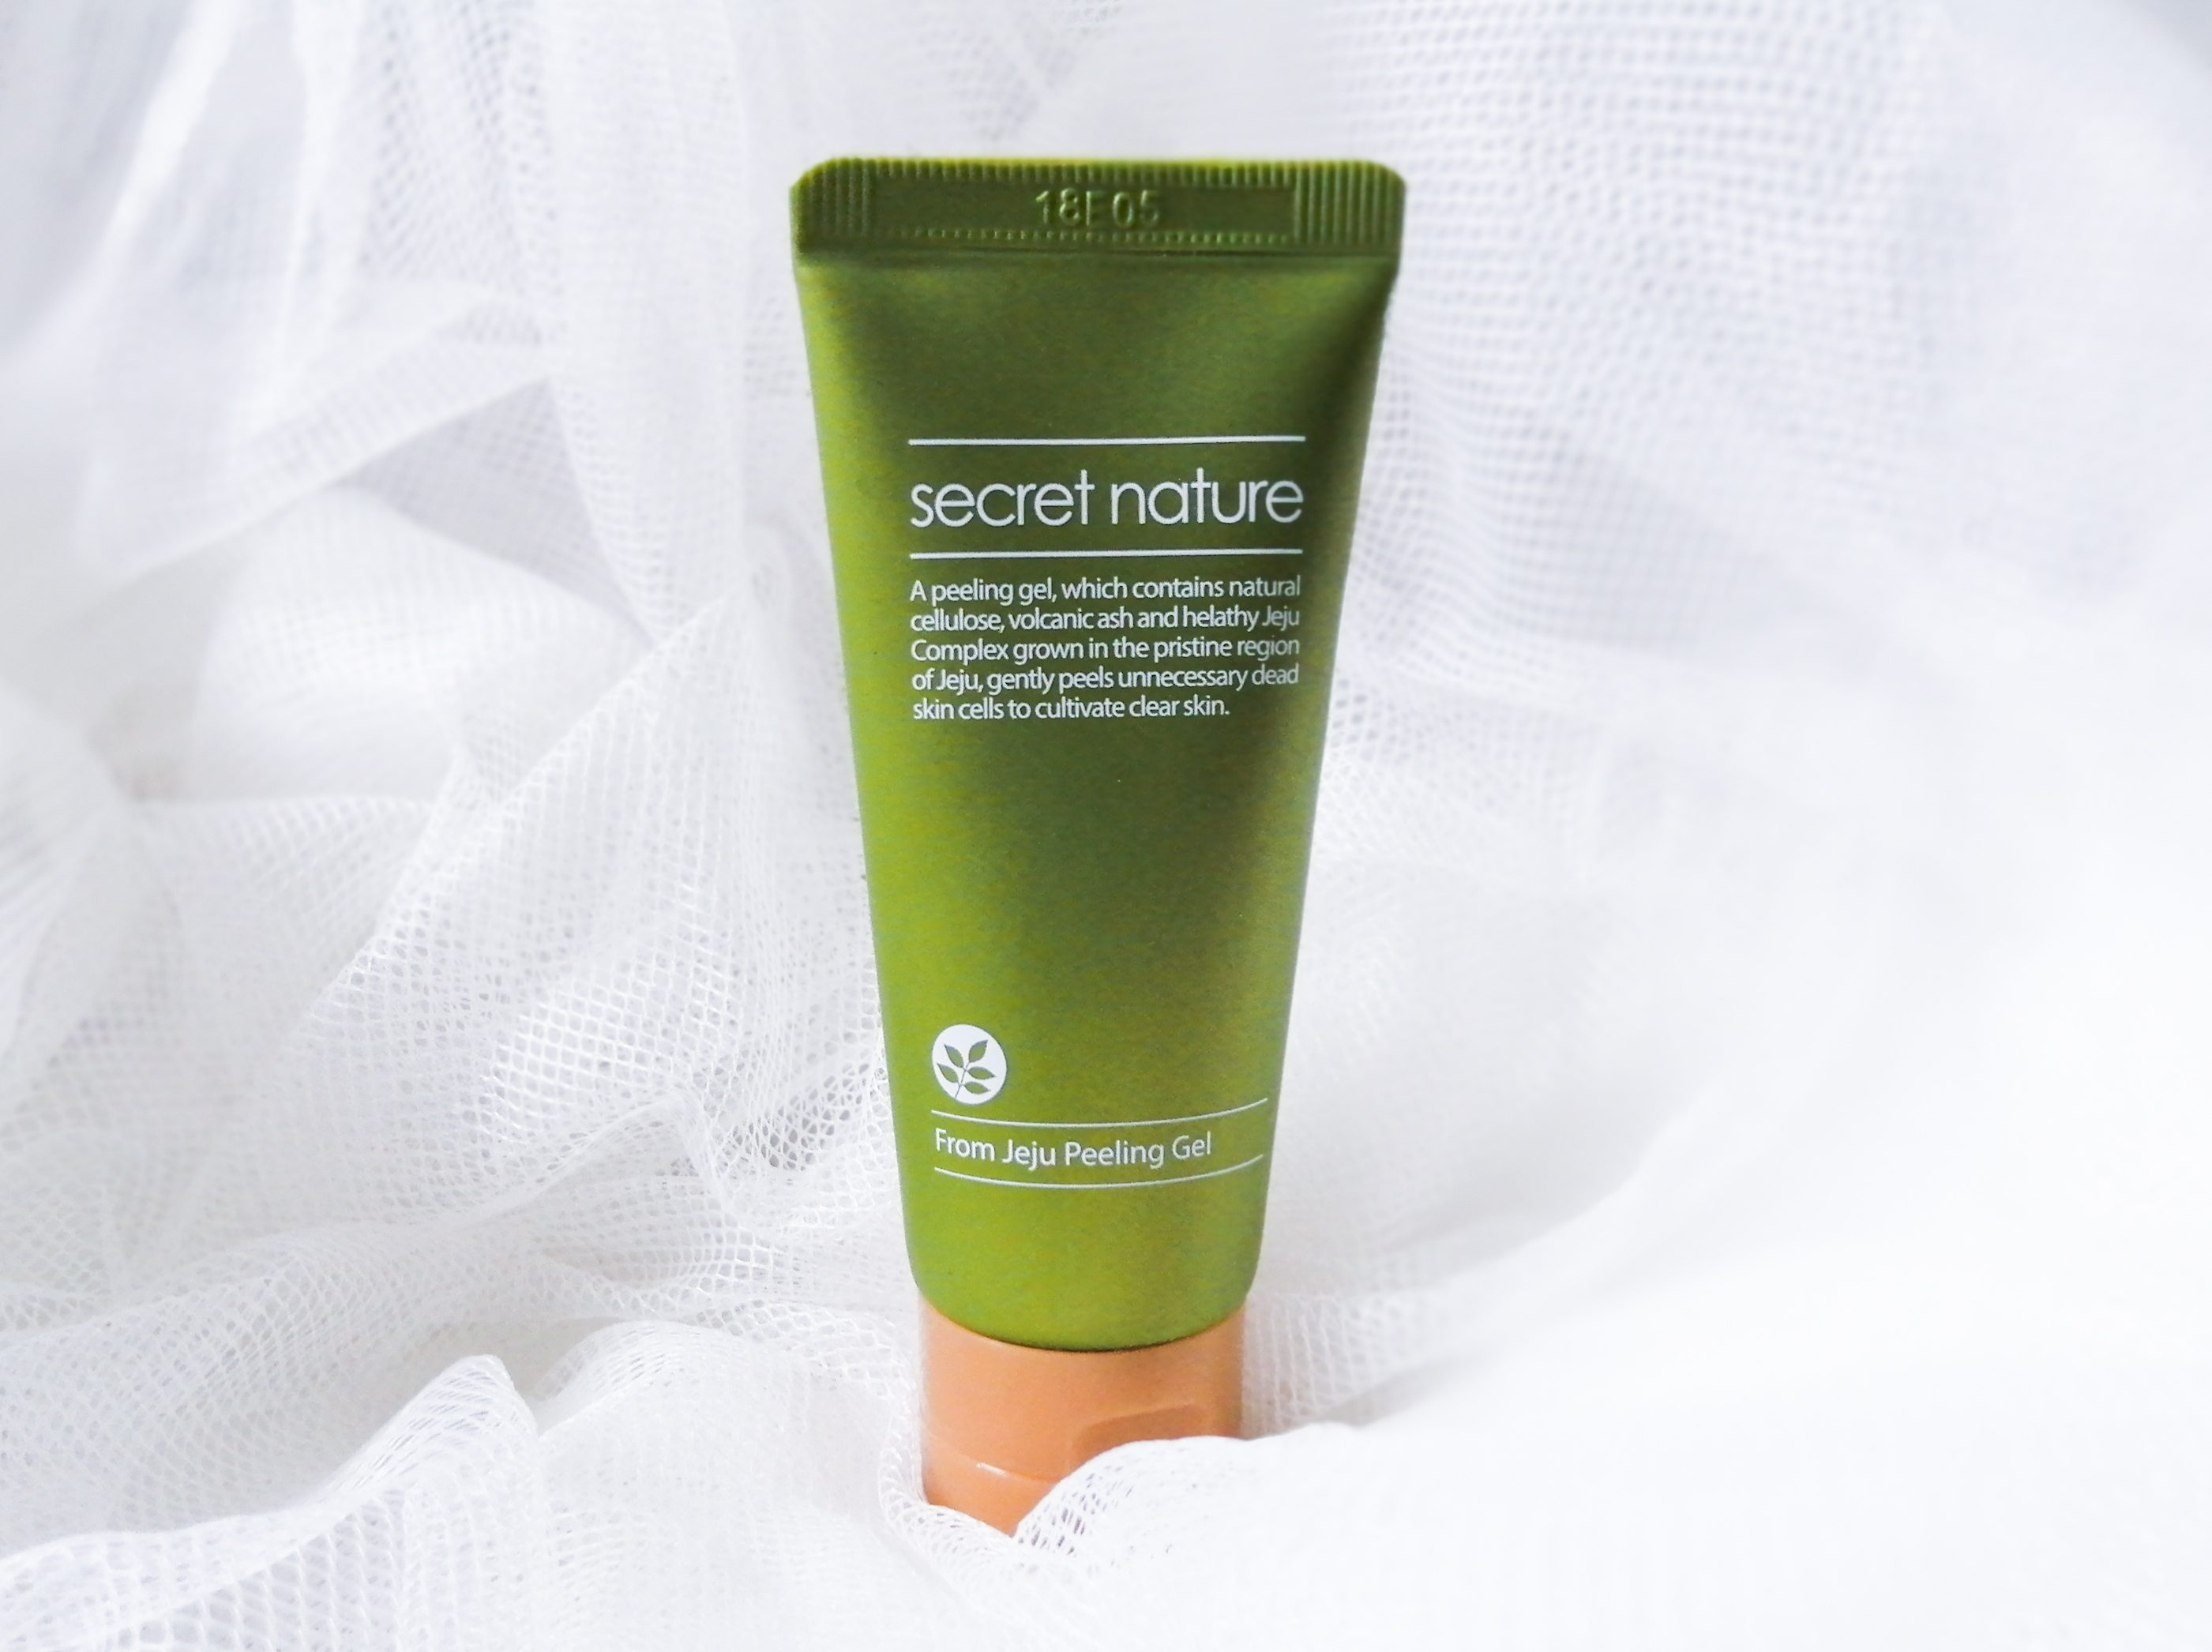 Secret Nature from Jeju Peeling Gel Review